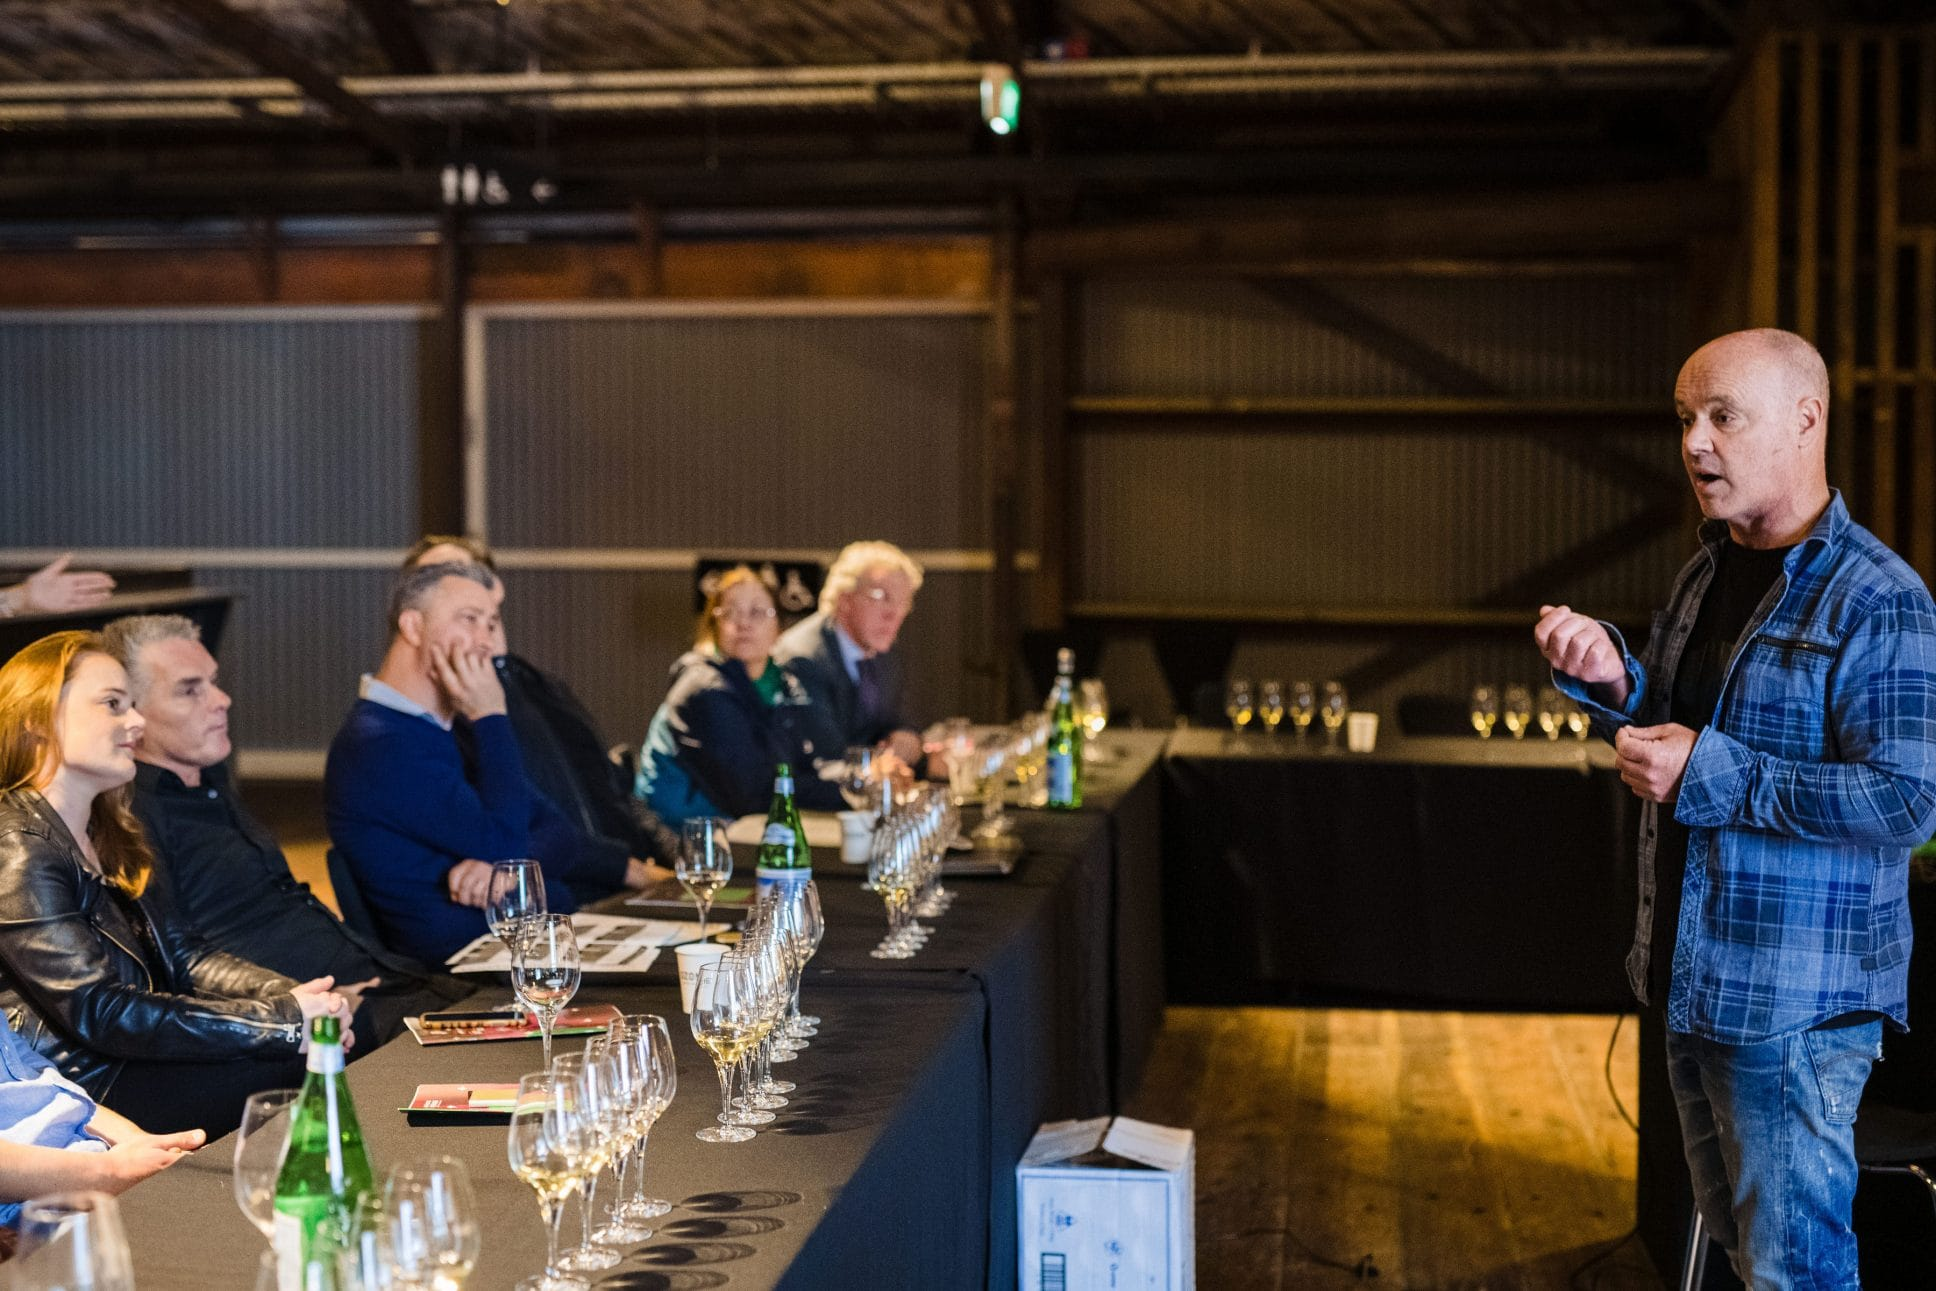 Shed 10 Auckland wine tasting event